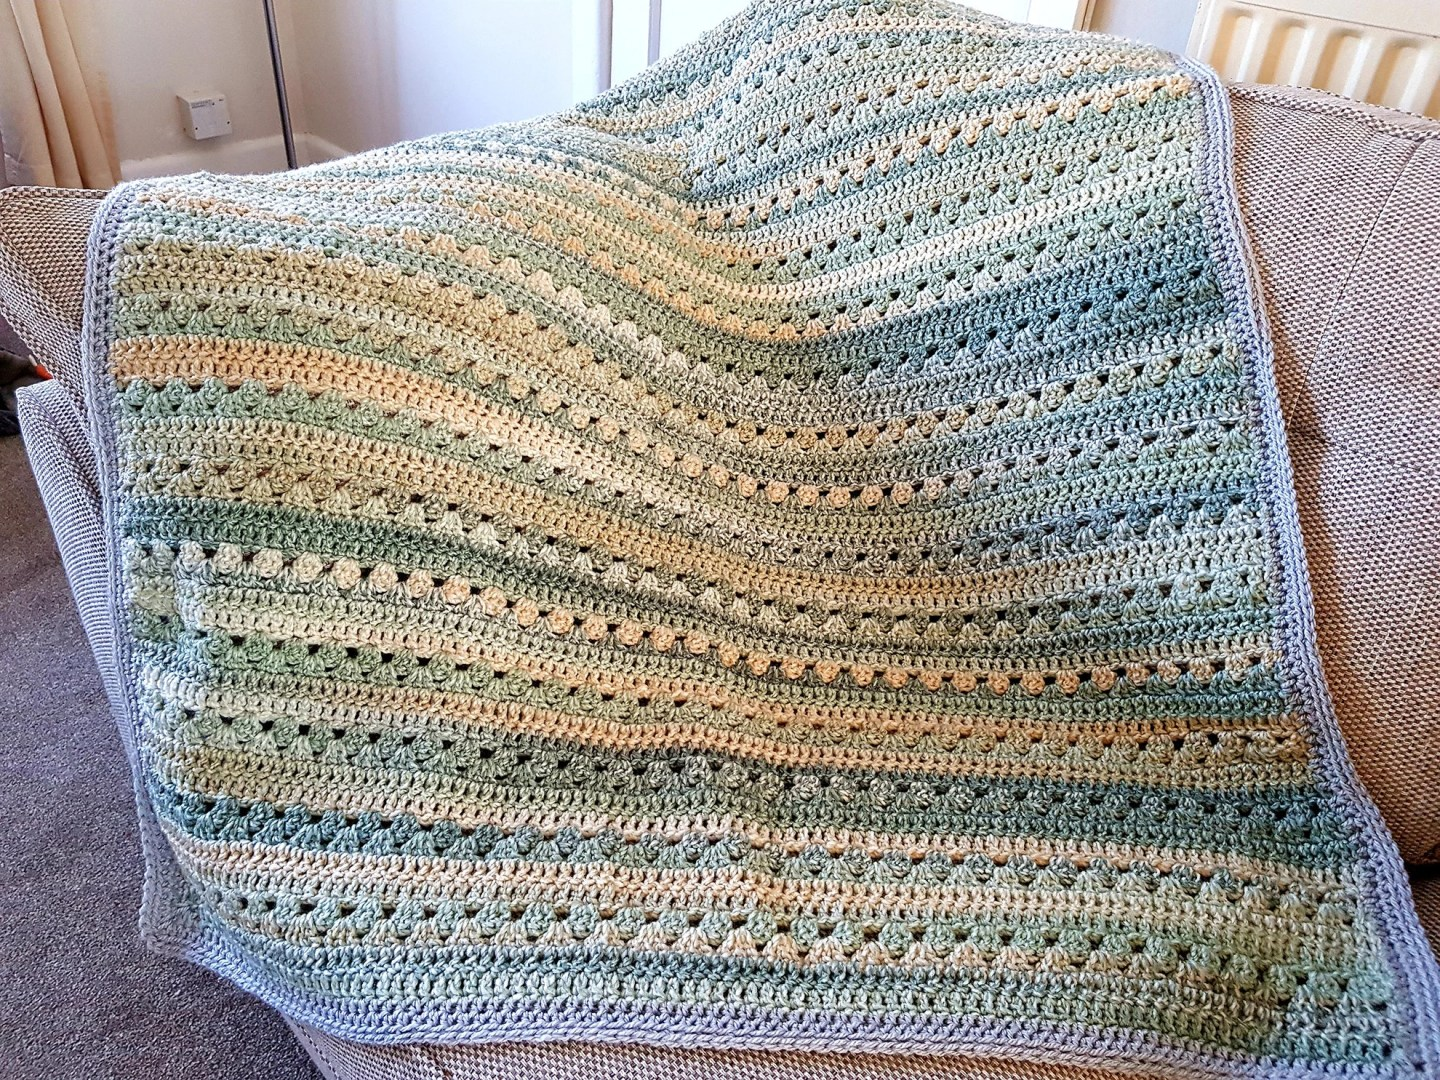 Soft and Cosy Blanket, So...